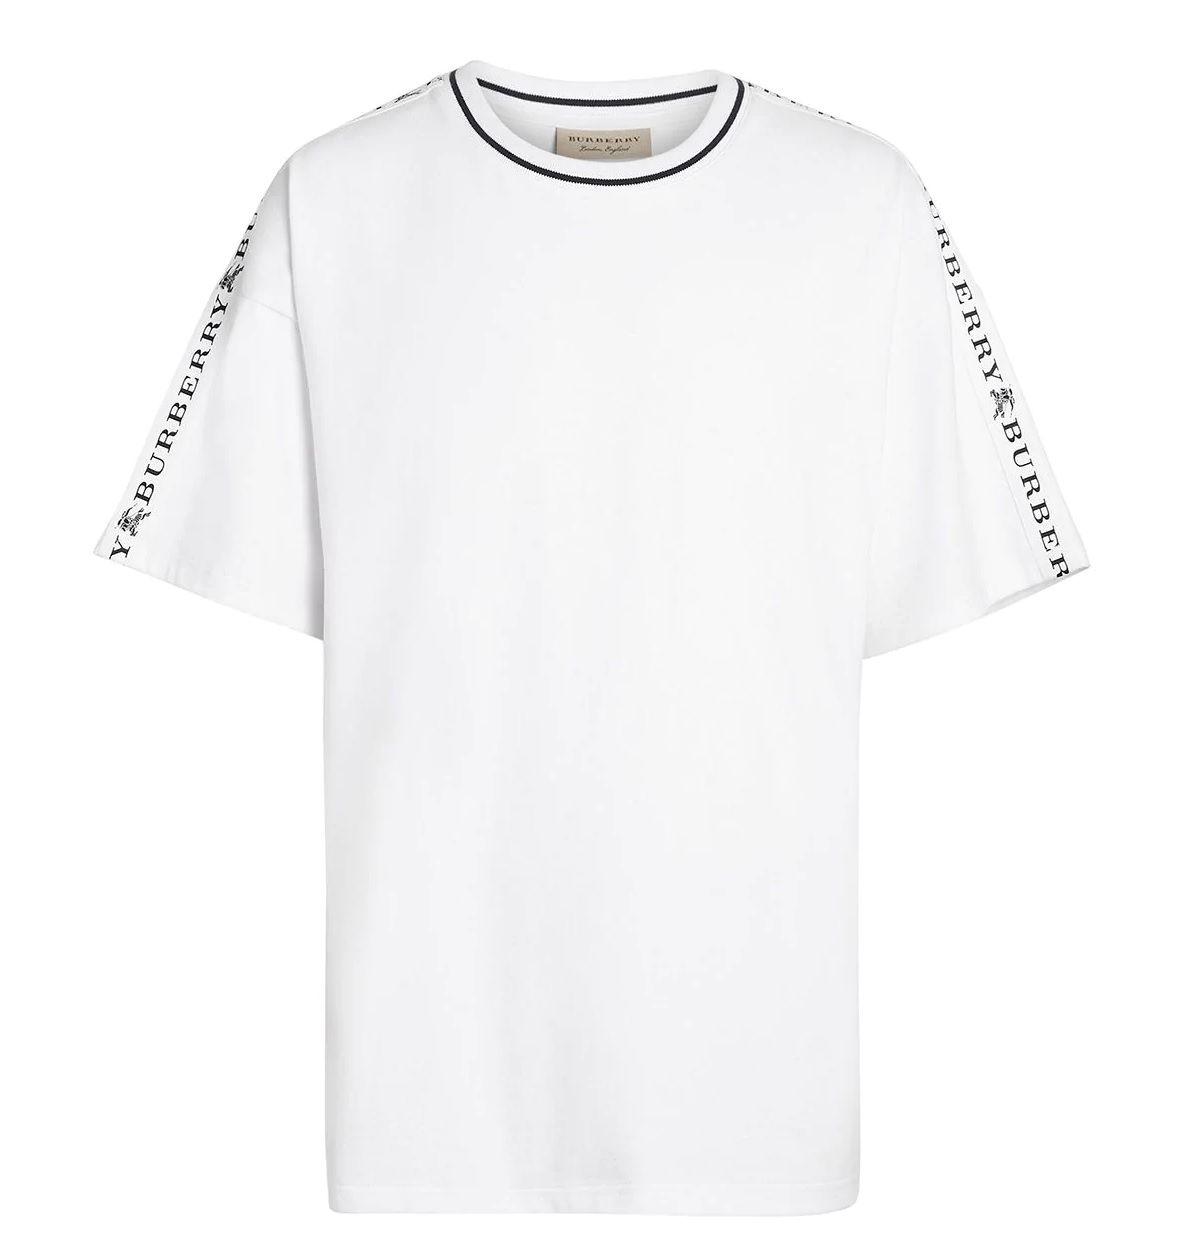 Burberry Short Sleeve Tape Detail Cotton T-shirt In White